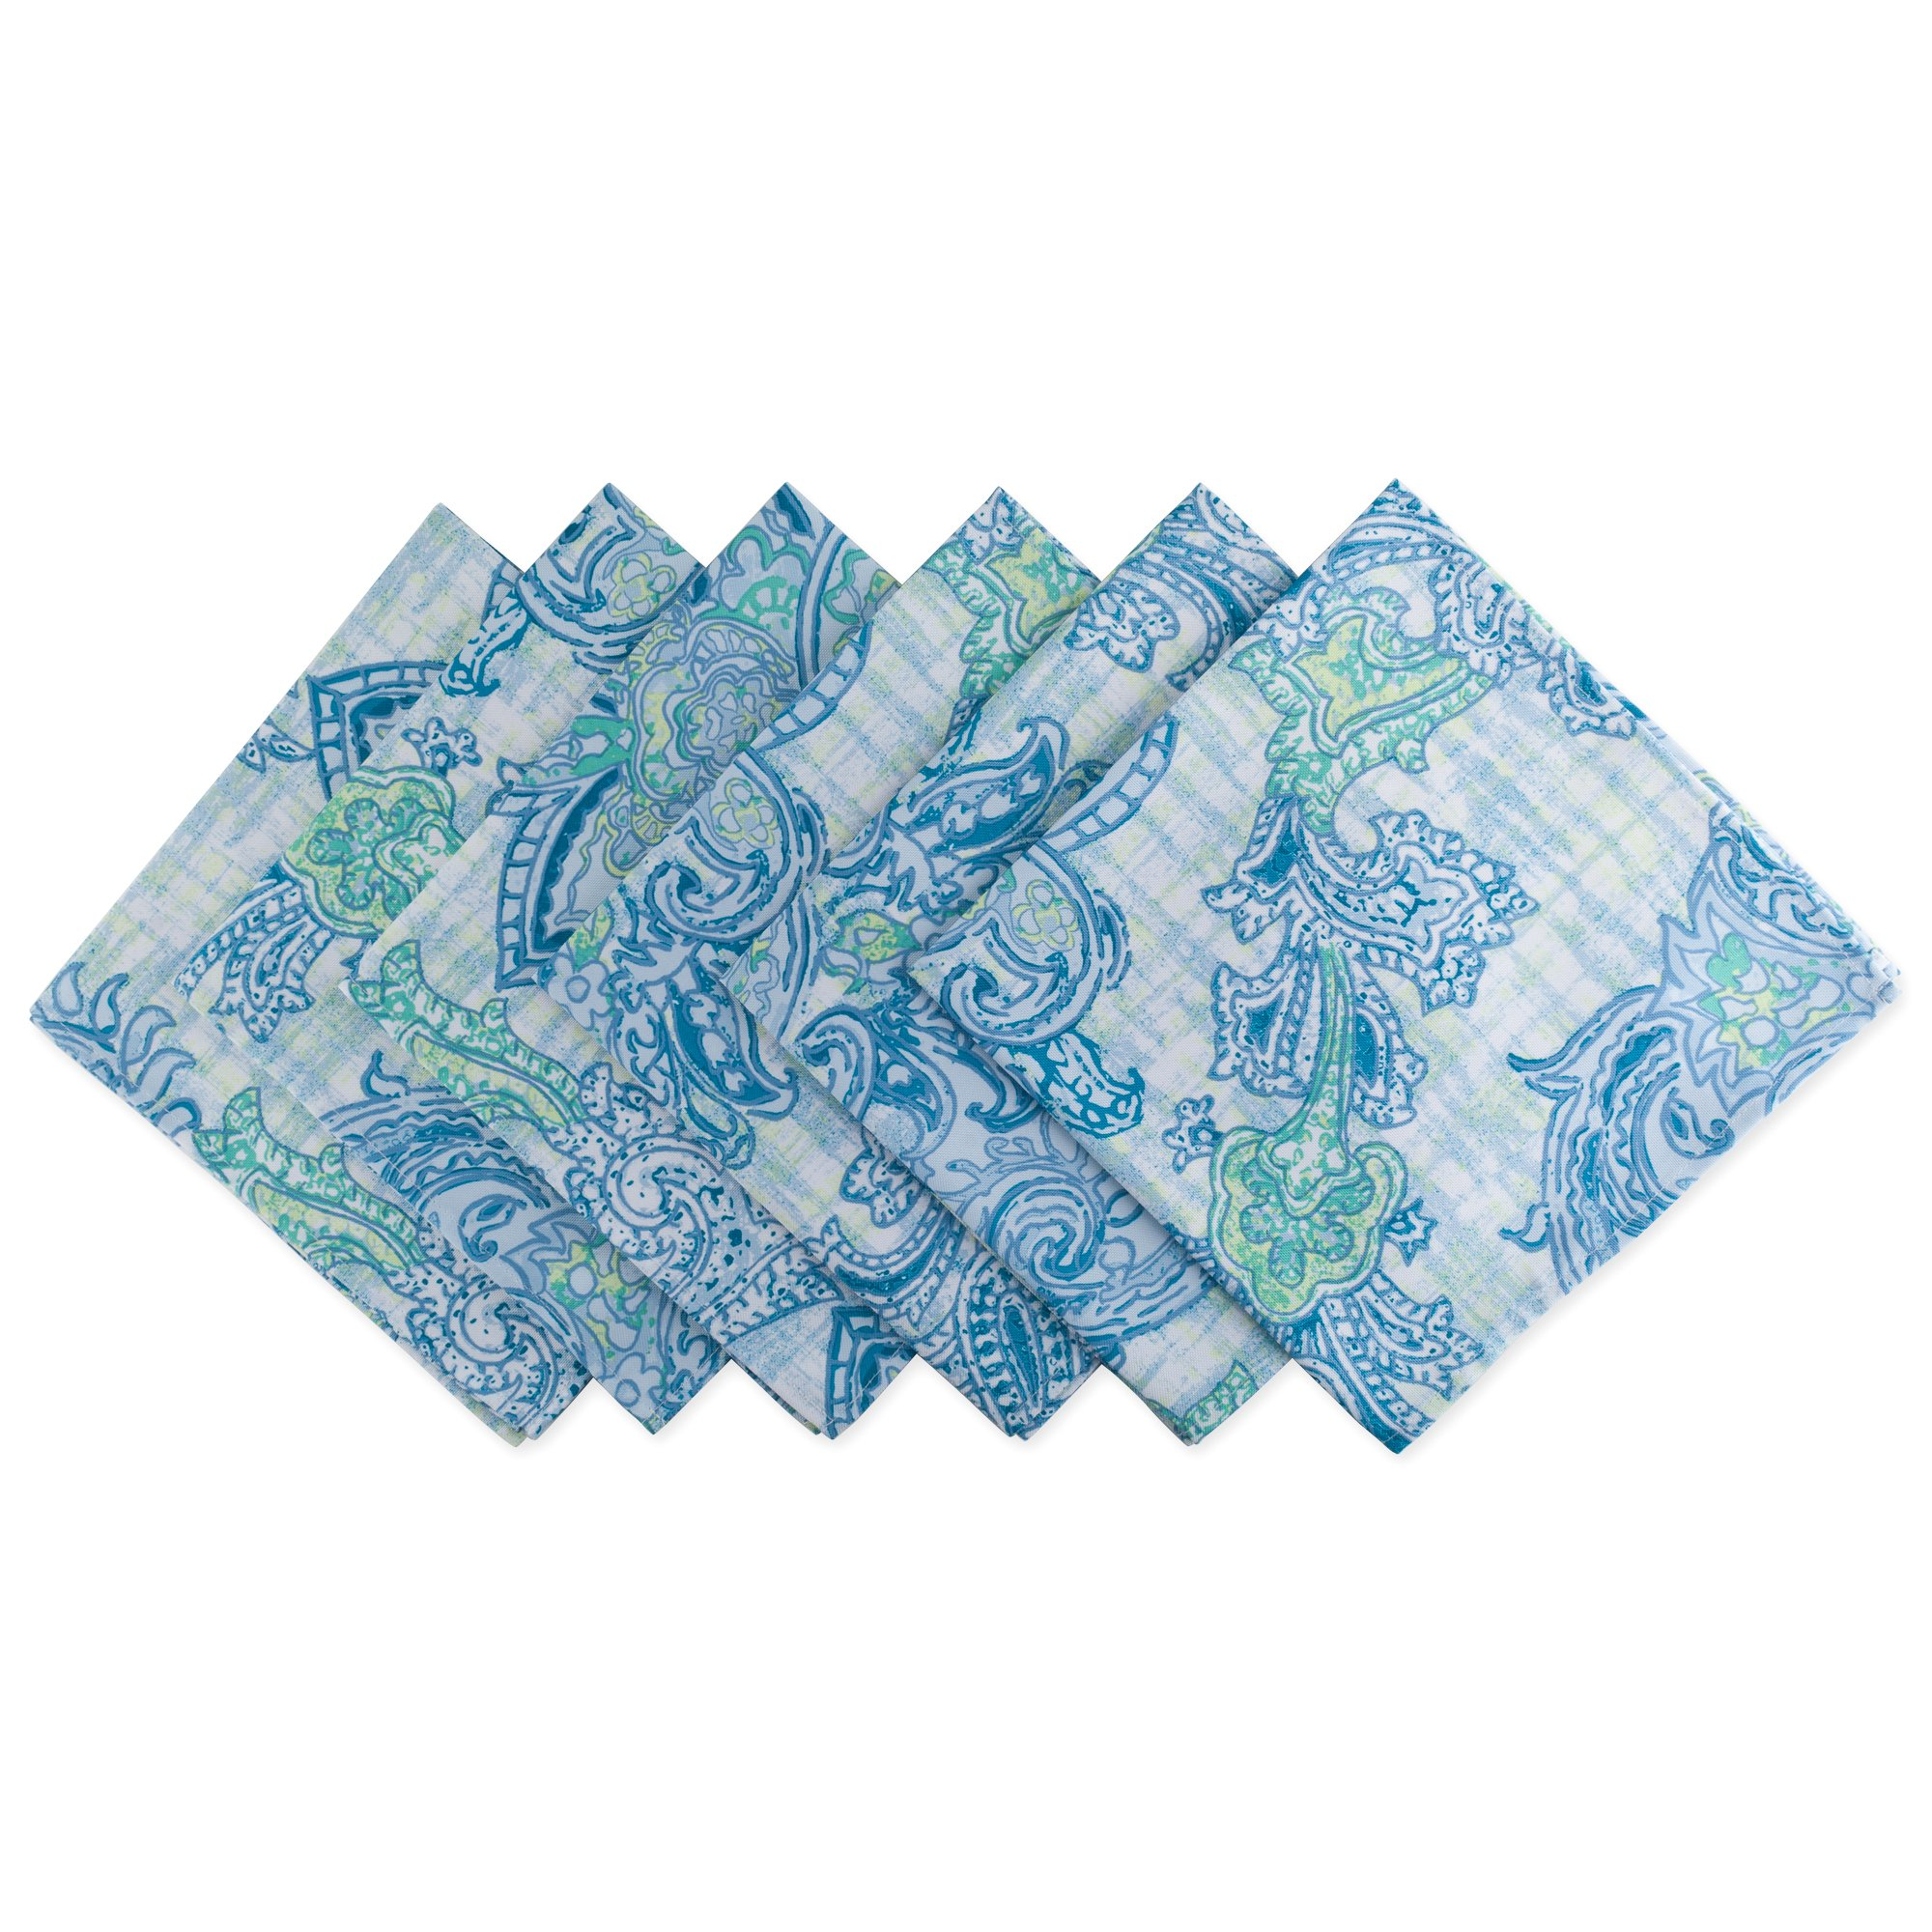 DII Cloth Napkins for  Everyday Place Settings, Family Gatherings, BBQ's, Holiday Parties, & Catering Events, Oversized & Stain Resistant for Indoor/Outdoor Use (20x20'' - Set of 6) Blue Paisley by DII